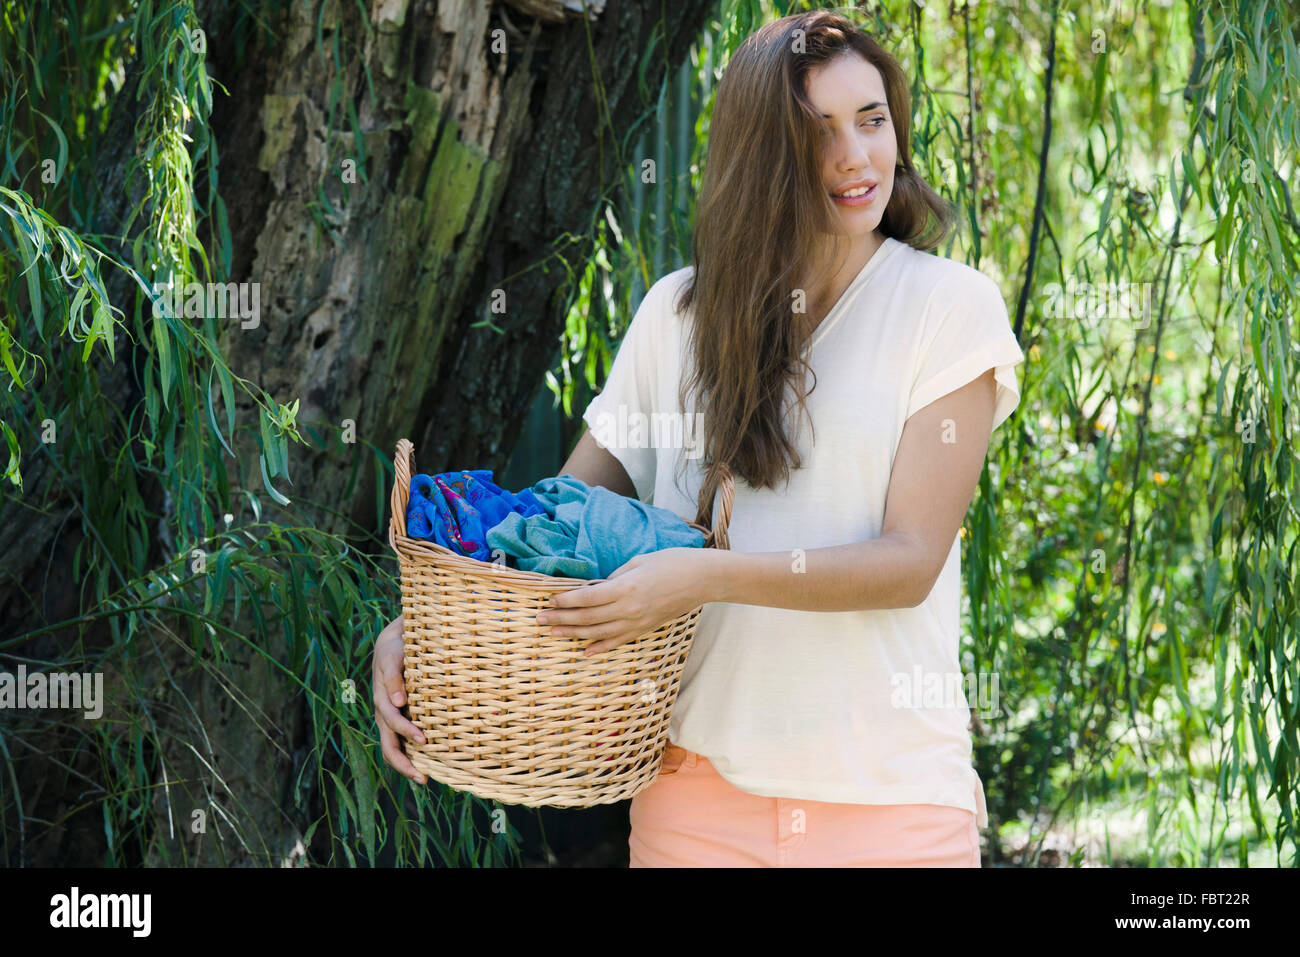 Woman carrying laundry basket Photo Stock